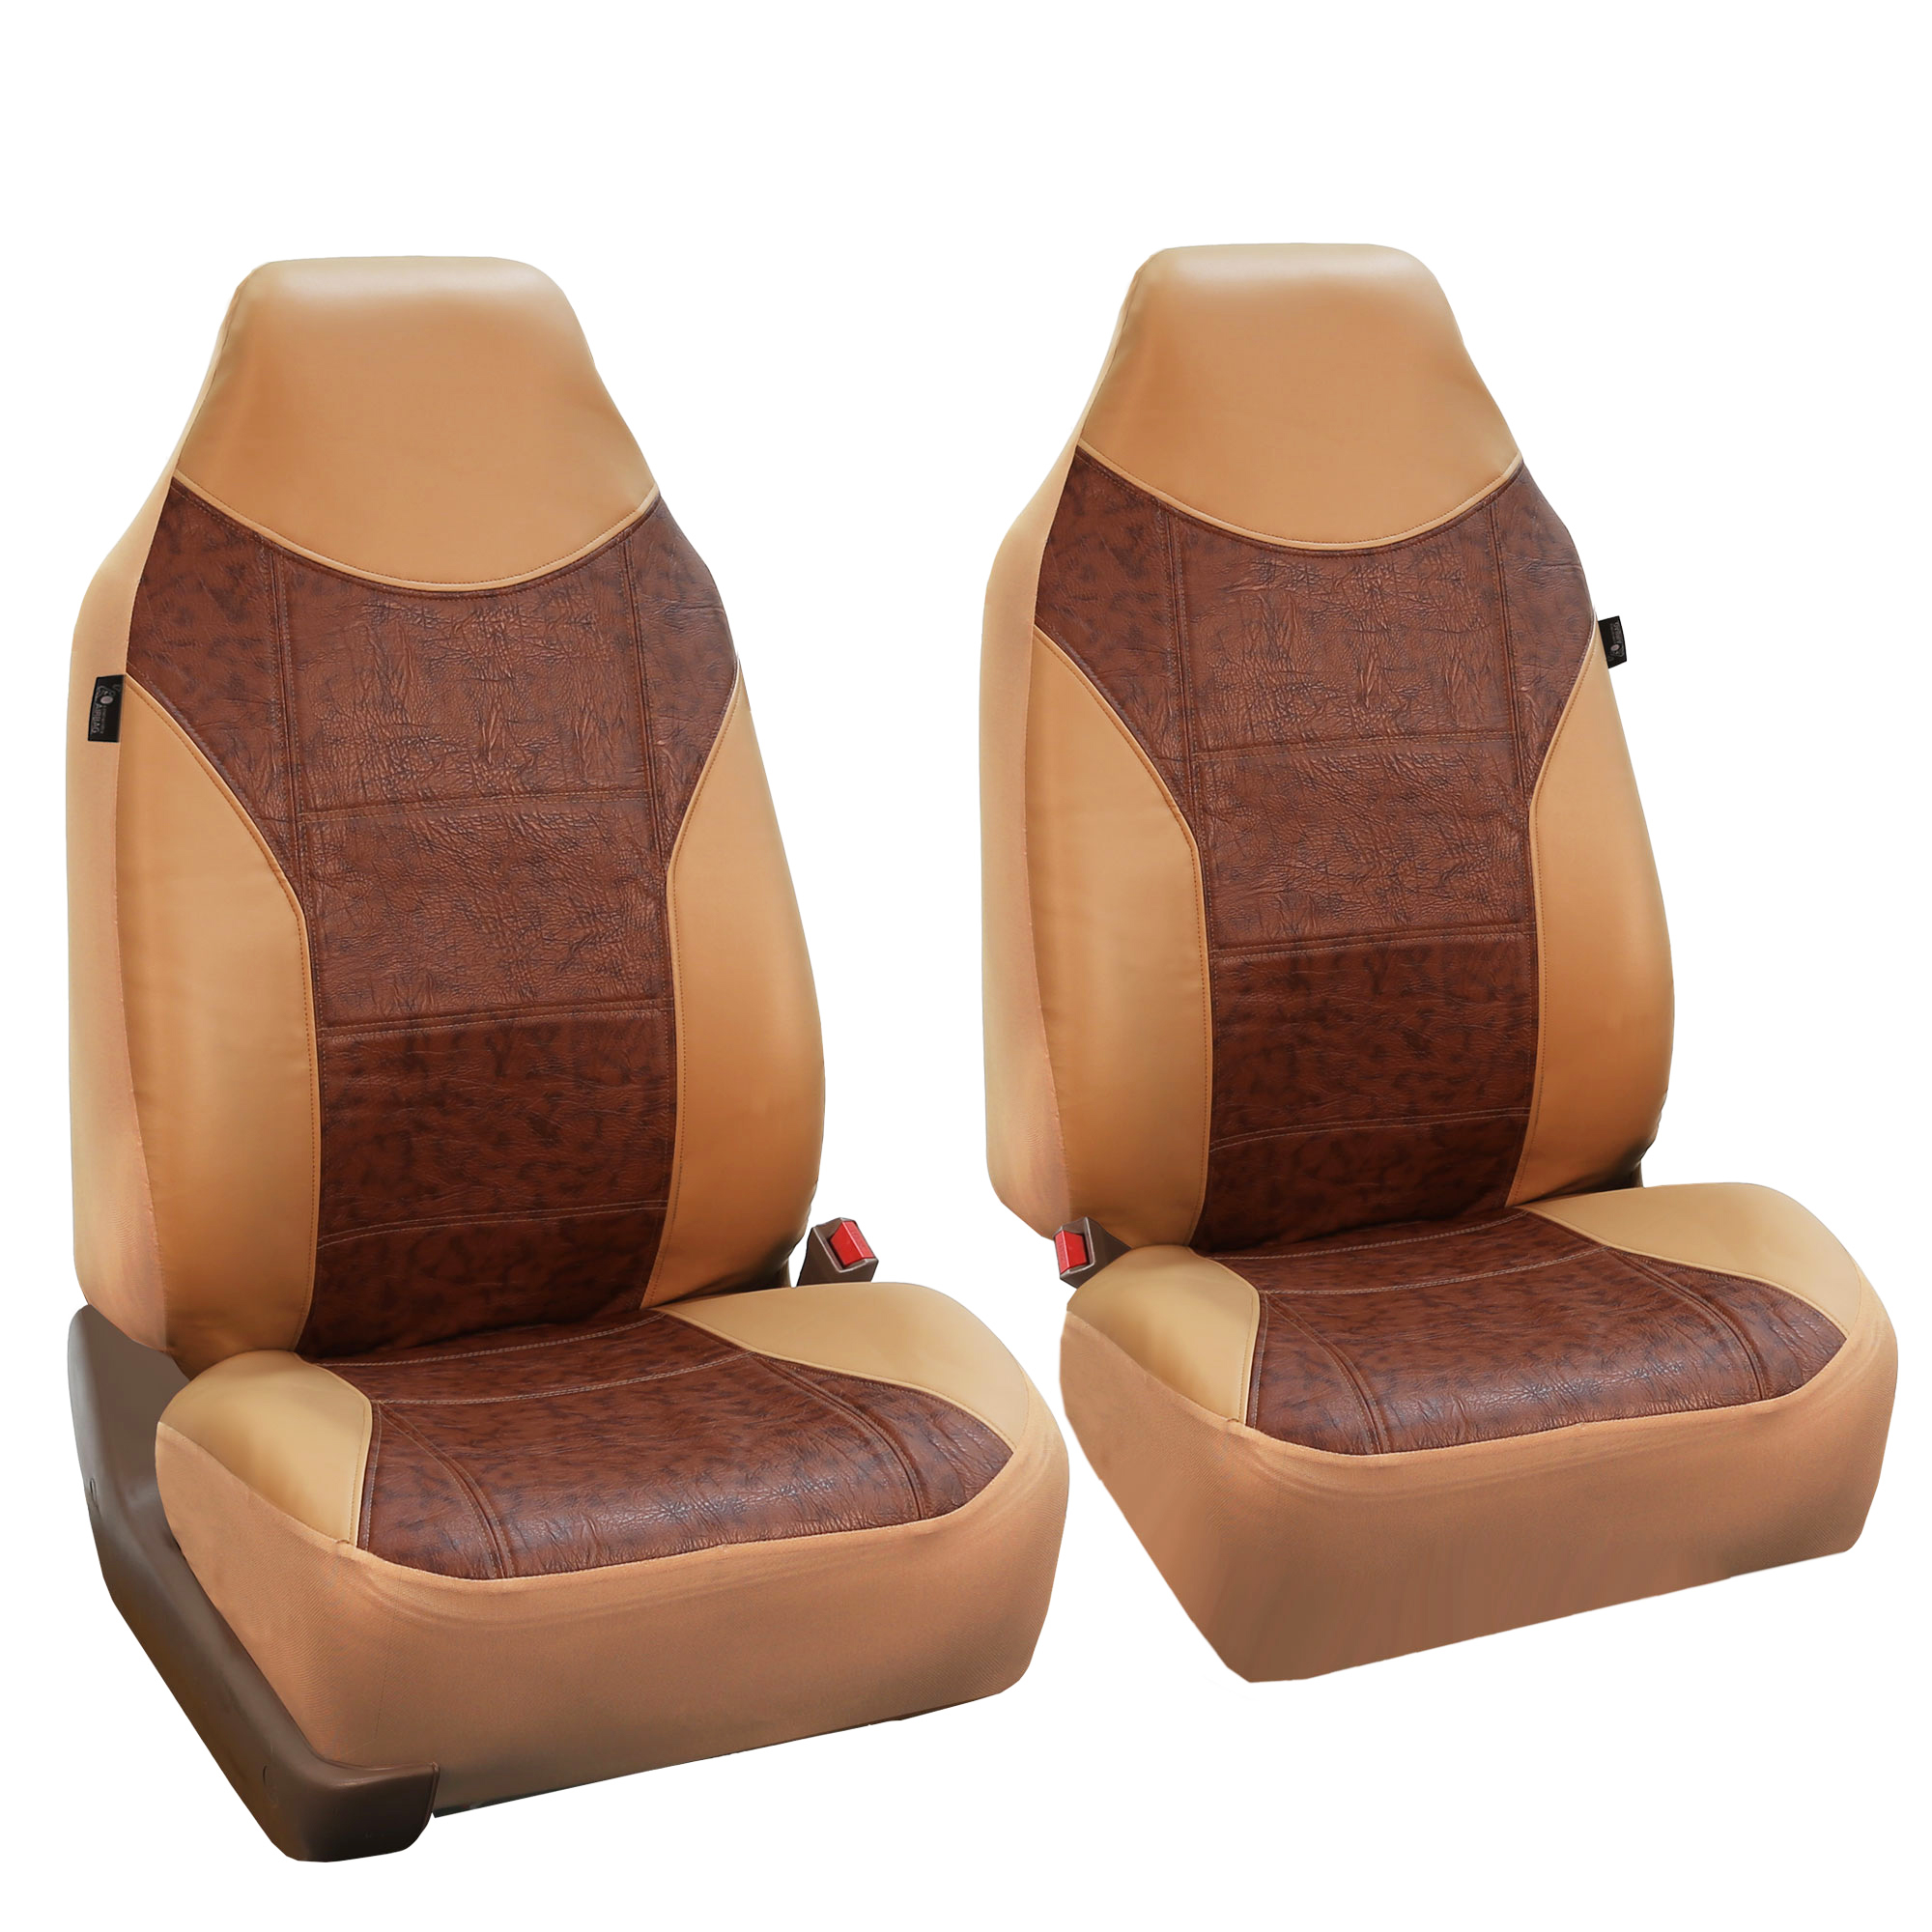 Faux Leather Car Seat Covers Tan Brown Top Quality For Car